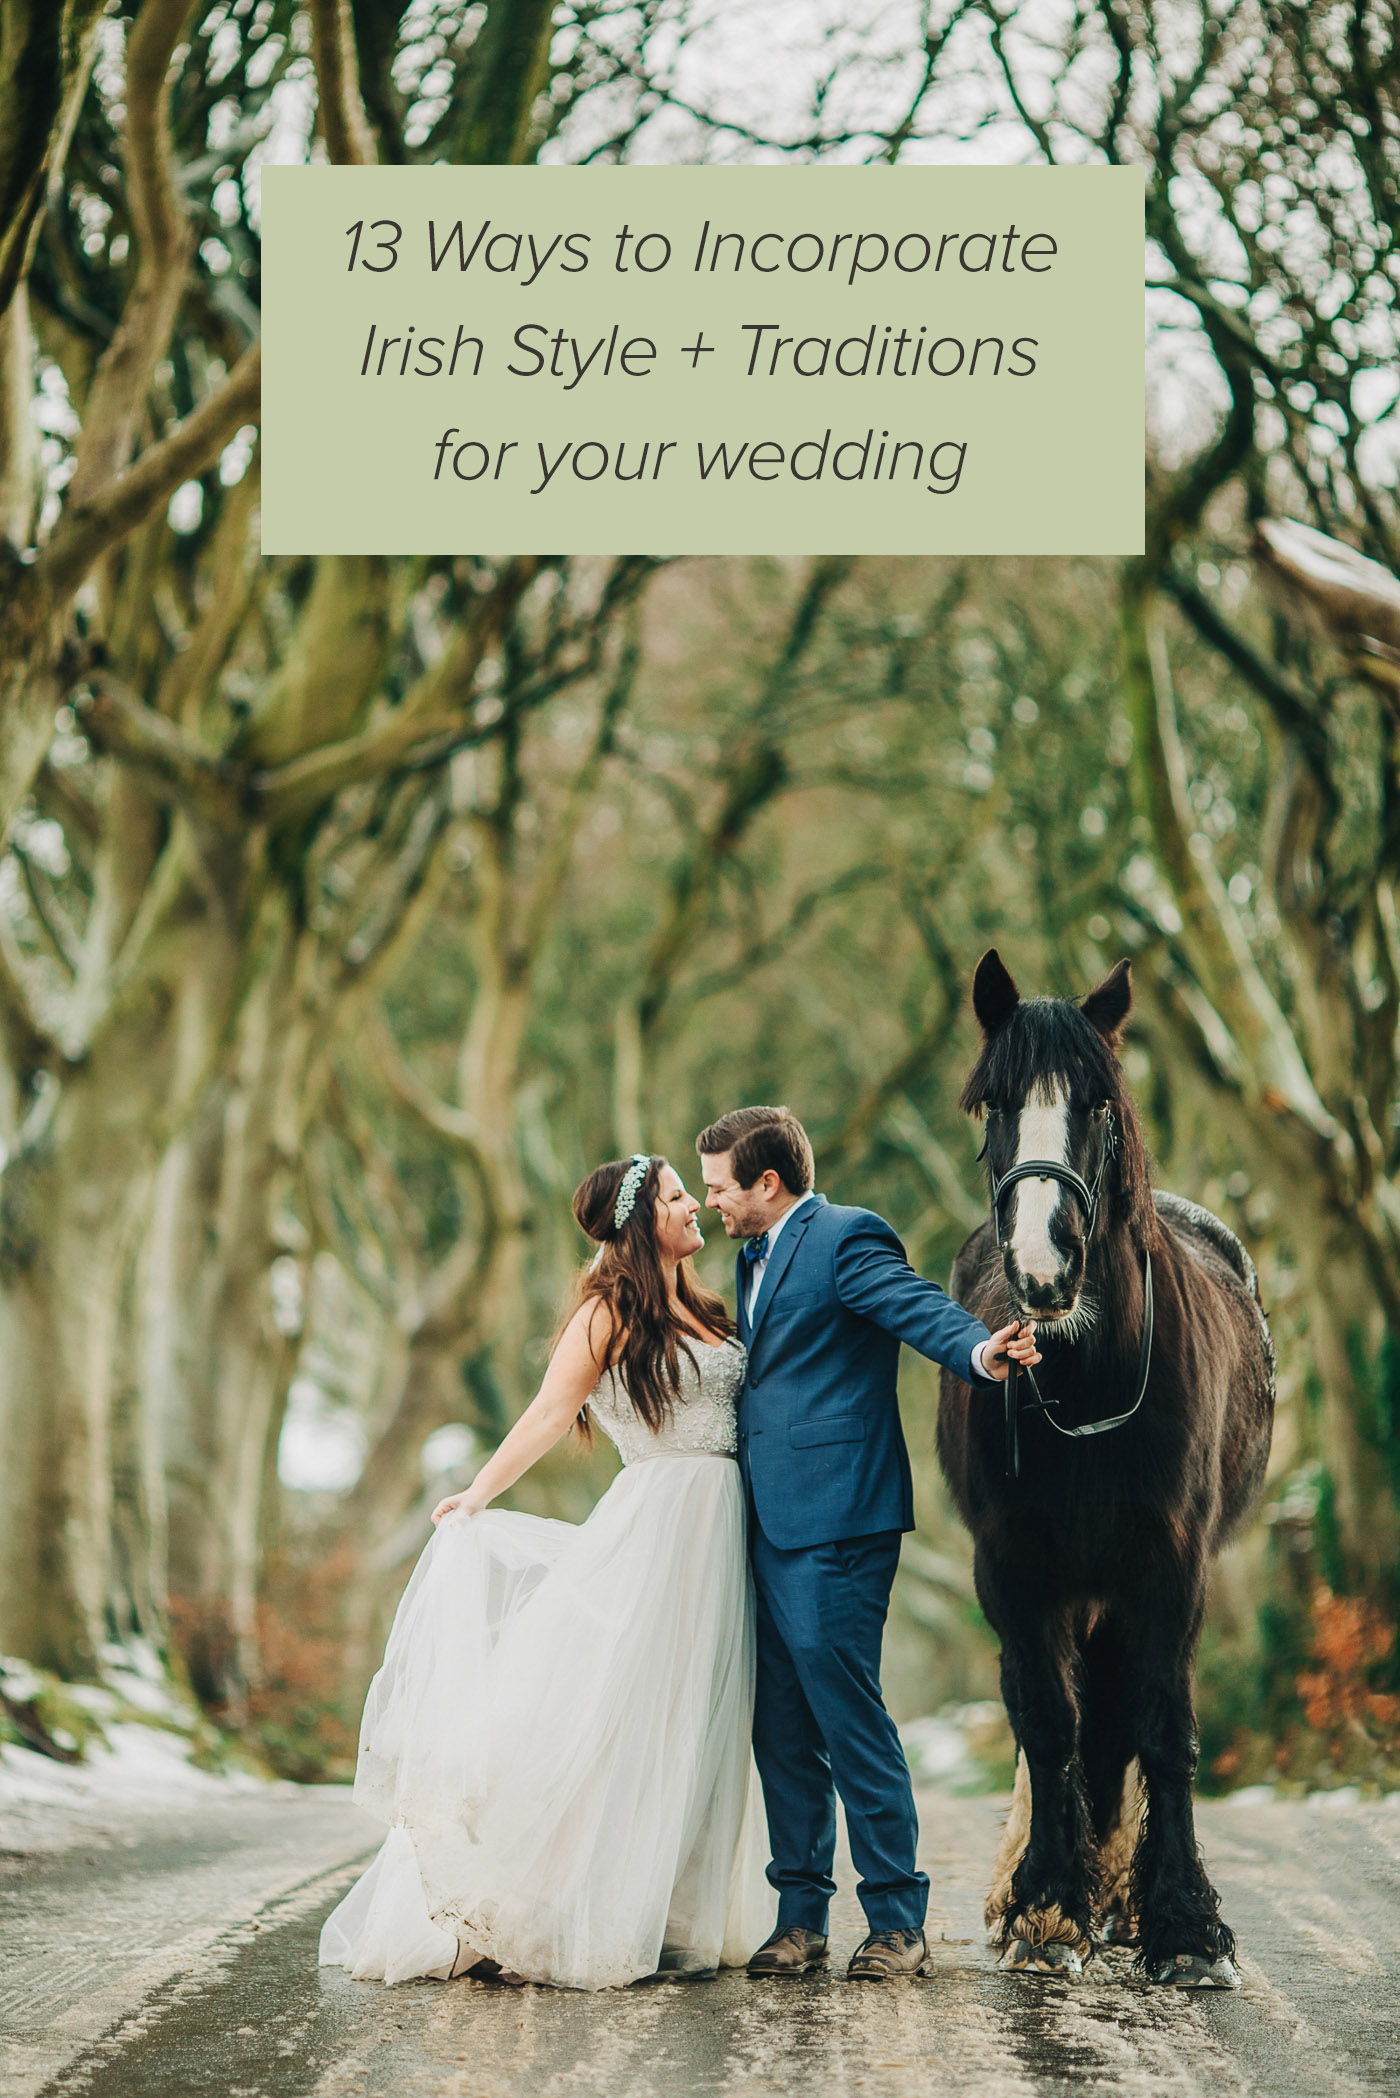 Irish traditions for your wedding with a bride and groom and horse in Ireland